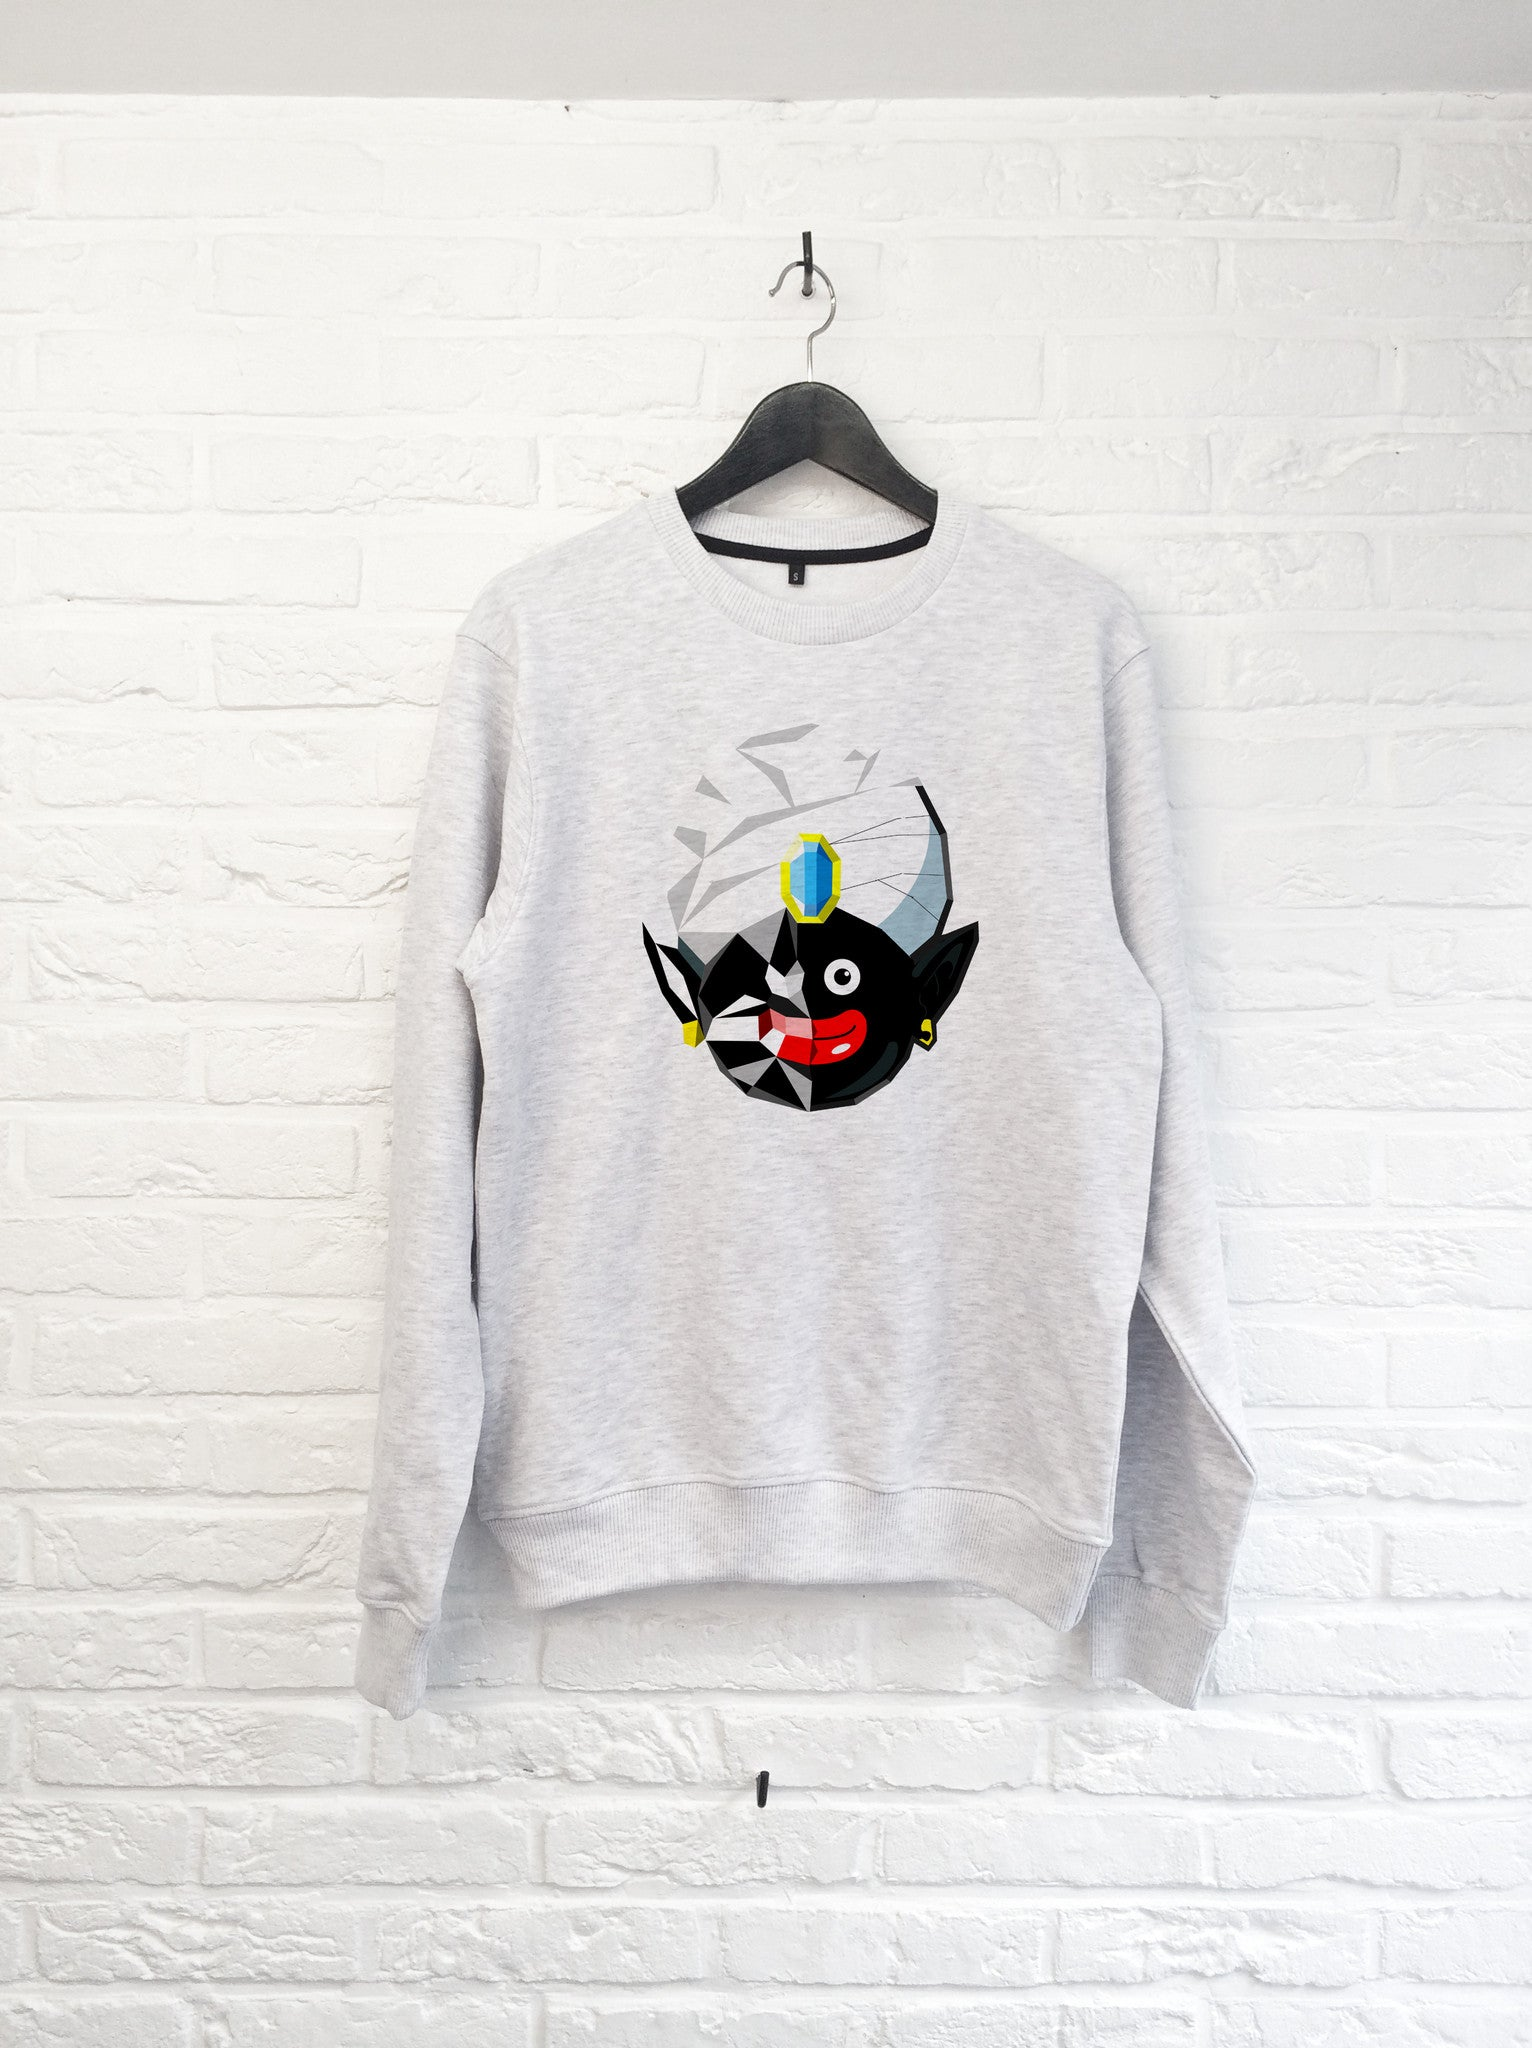 TH Gallery - Mr Popo - Sweat-Sweat shirts-Atelier Amelot